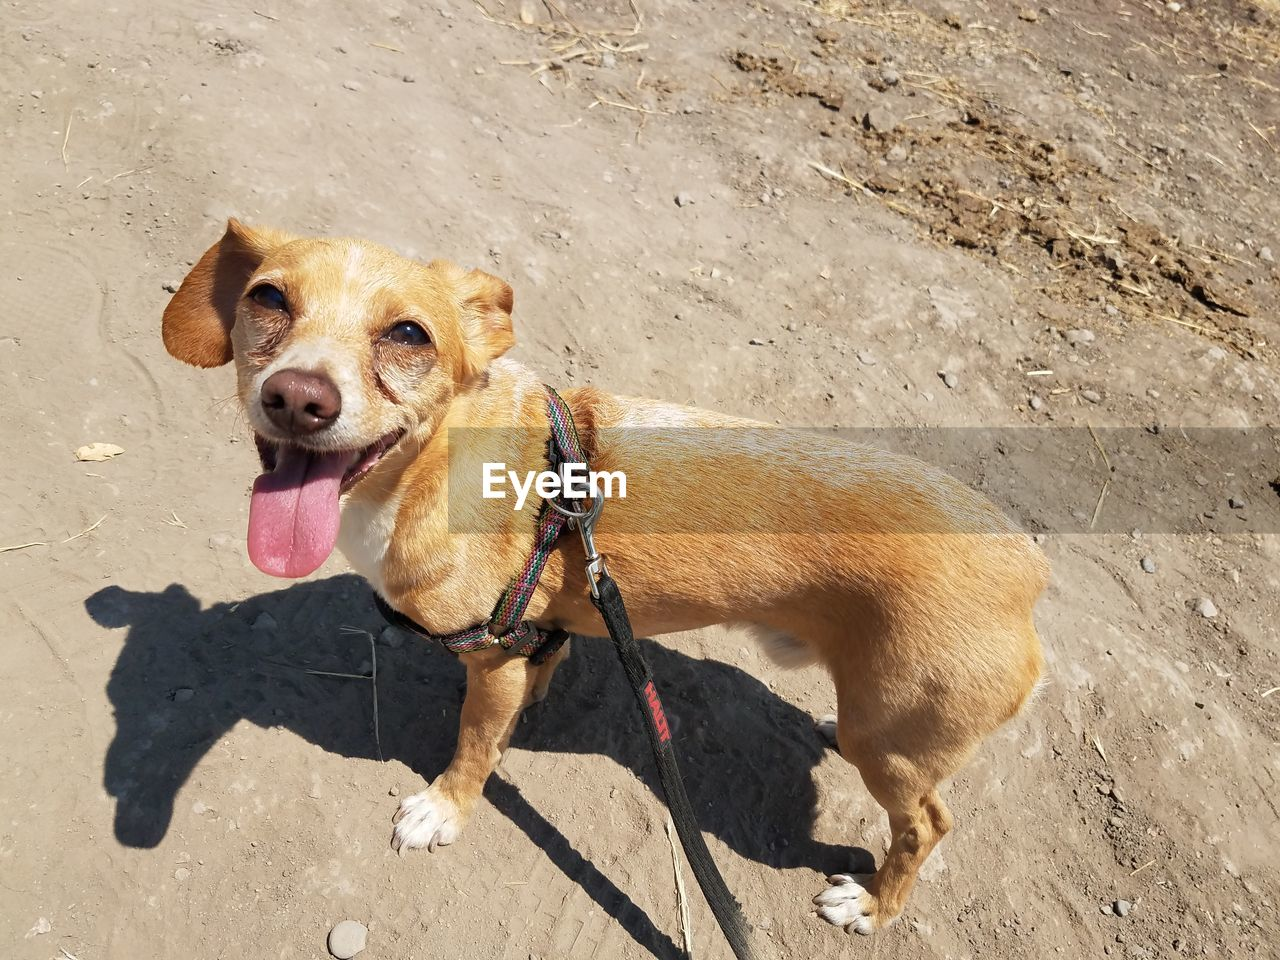 one animal, mammal, animal, animal themes, pets, domestic animals, dog, domestic, canine, vertebrate, sunlight, brown, no people, pet leash, leash, pet collar, day, high angle view, collar, nature, mouth open